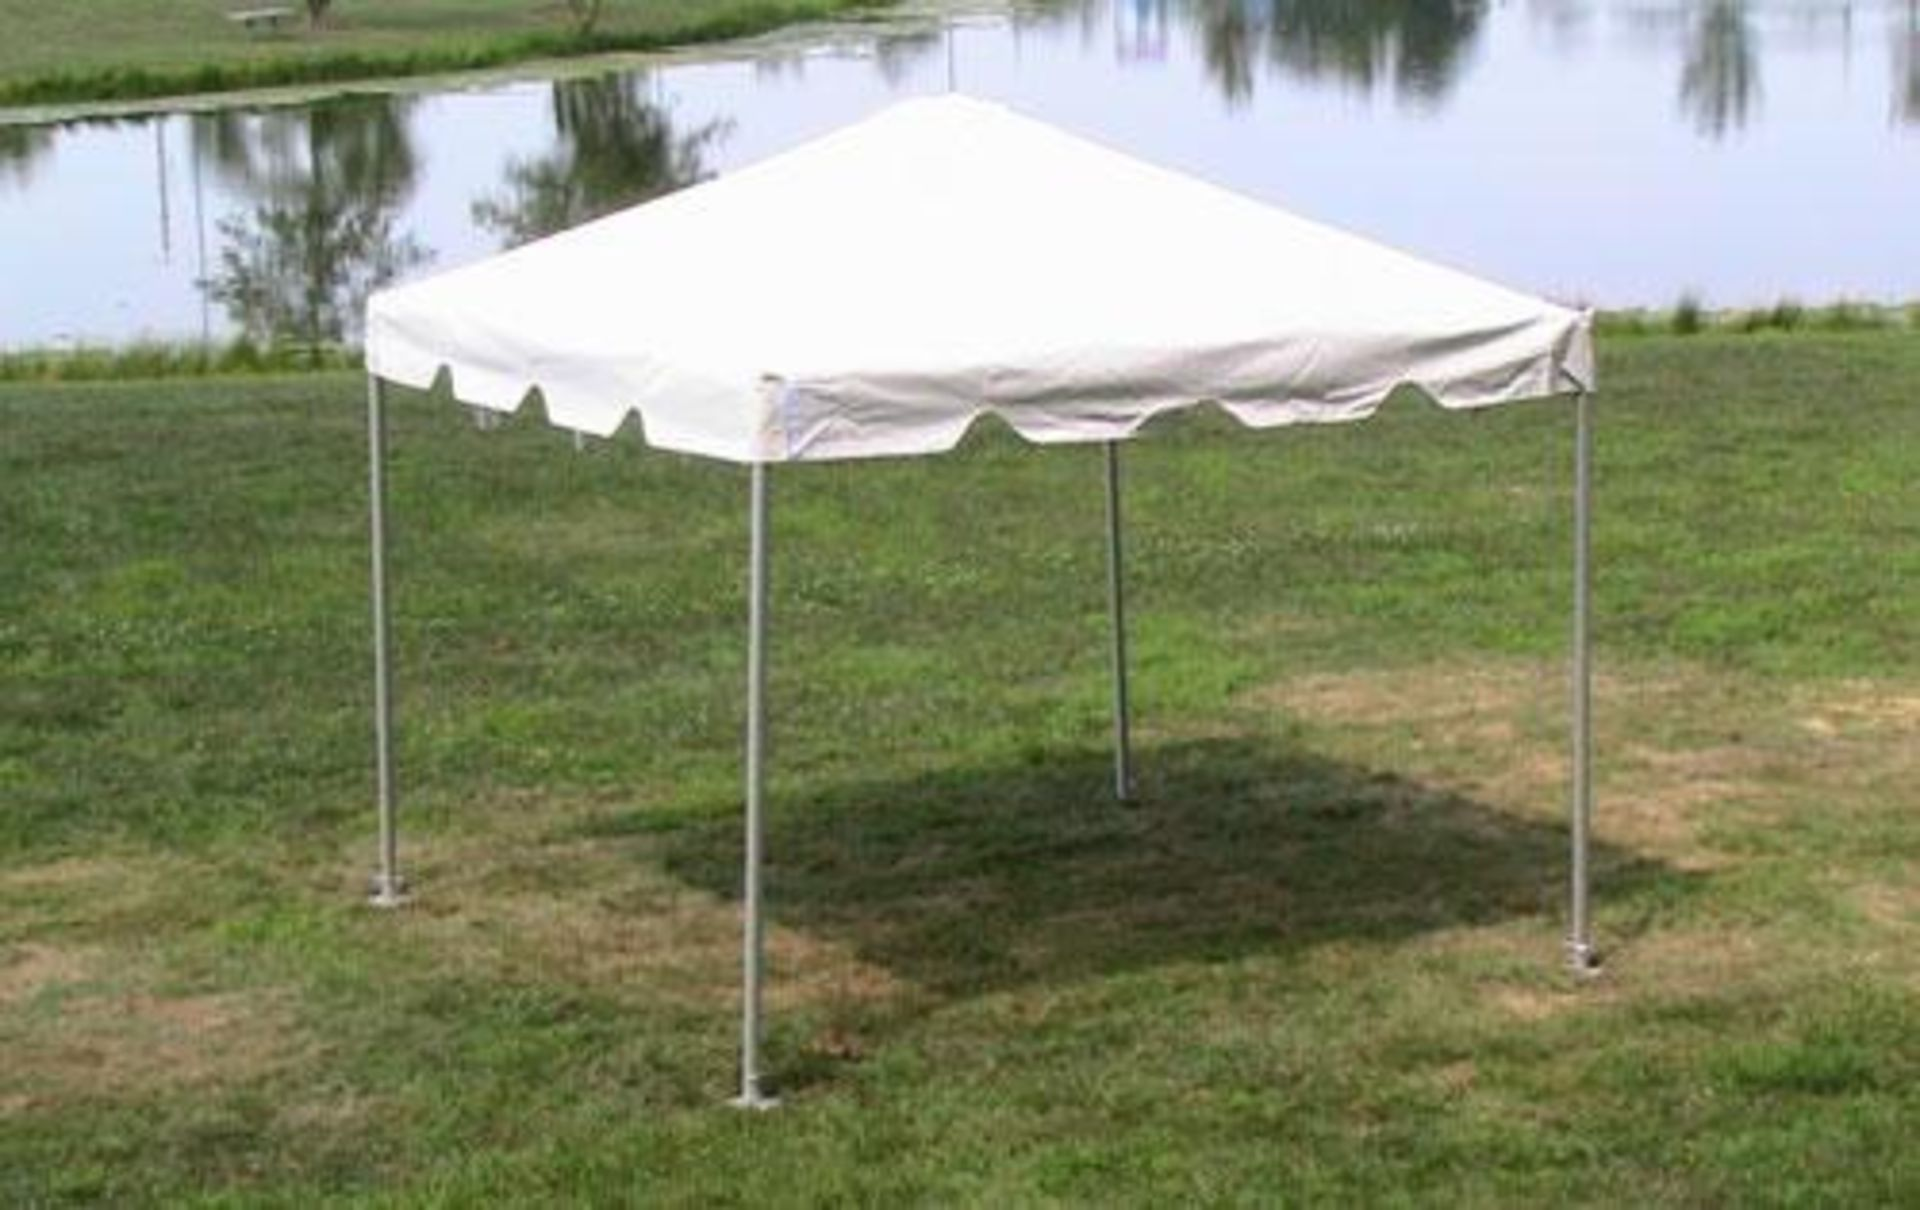 Lot 48 - 10 ft. x 10 ft. Frame Tents - Complete (2018) (sidewalls and rain gutters lots available)